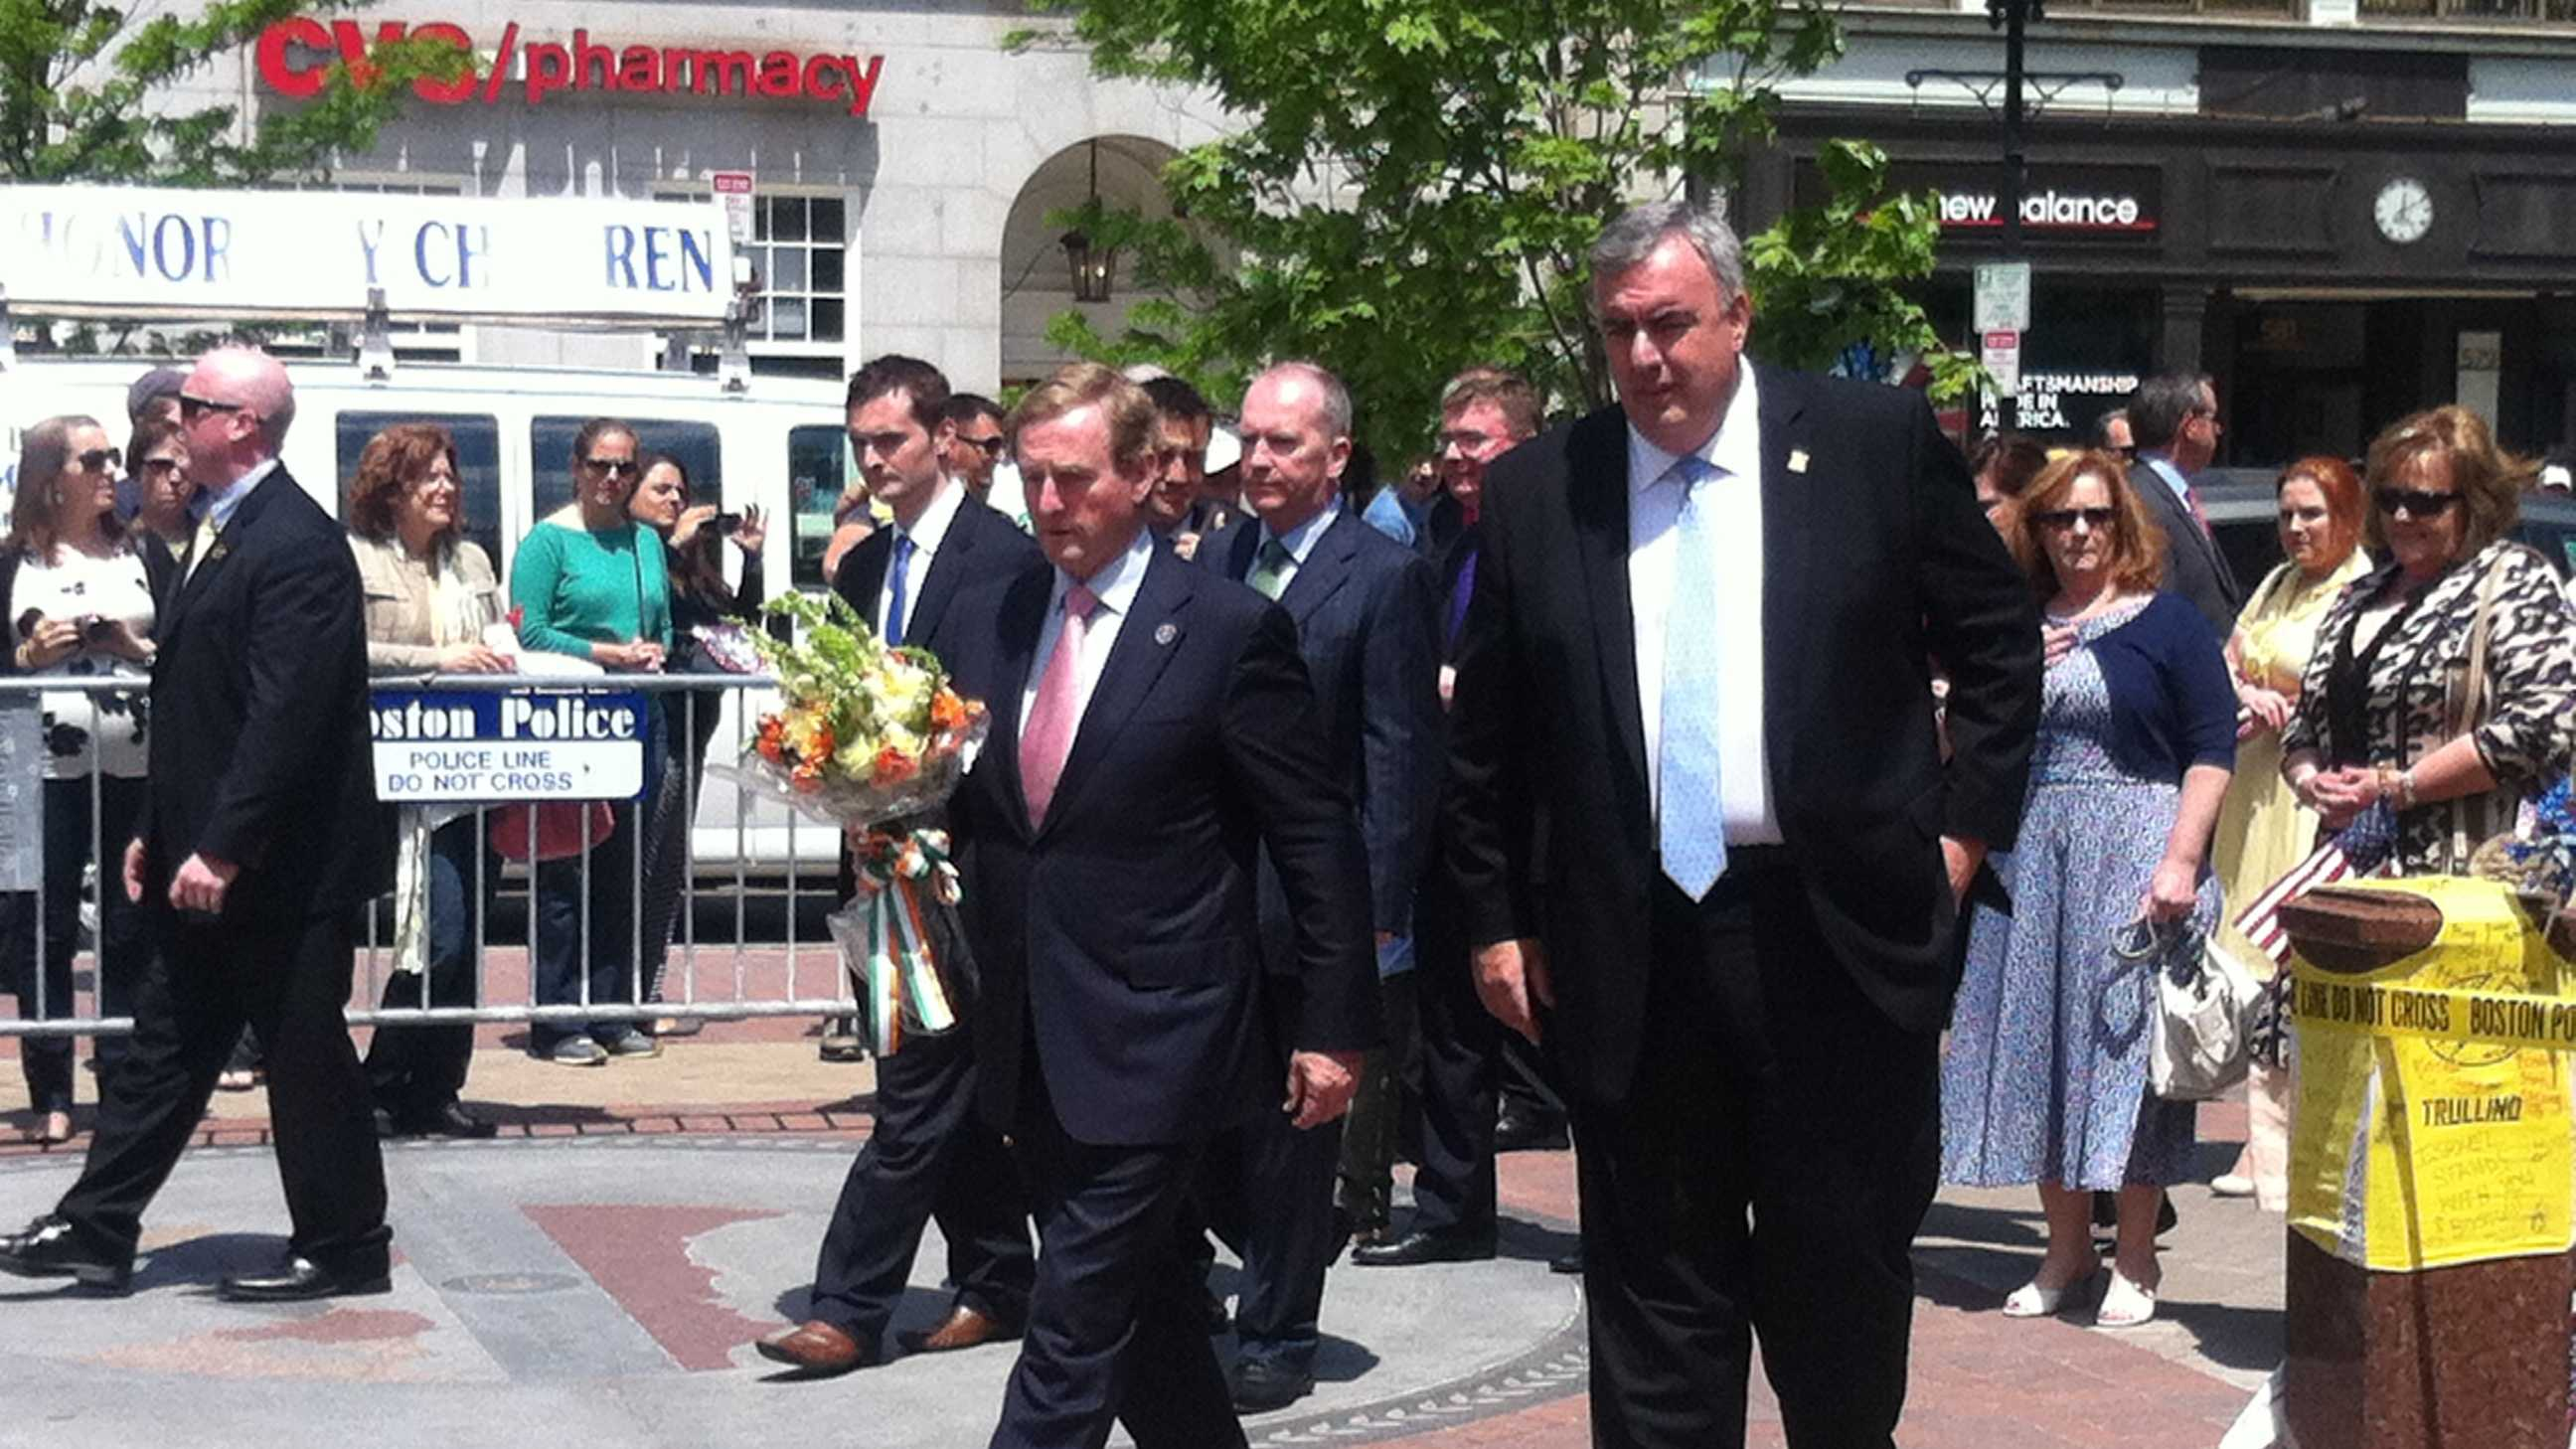 The Prime Minister of Ireland, Enda Kenny, visited the Boston Marathon memorial site in Copley Square with Boston Police Commissioner Ed Davis Sunday.